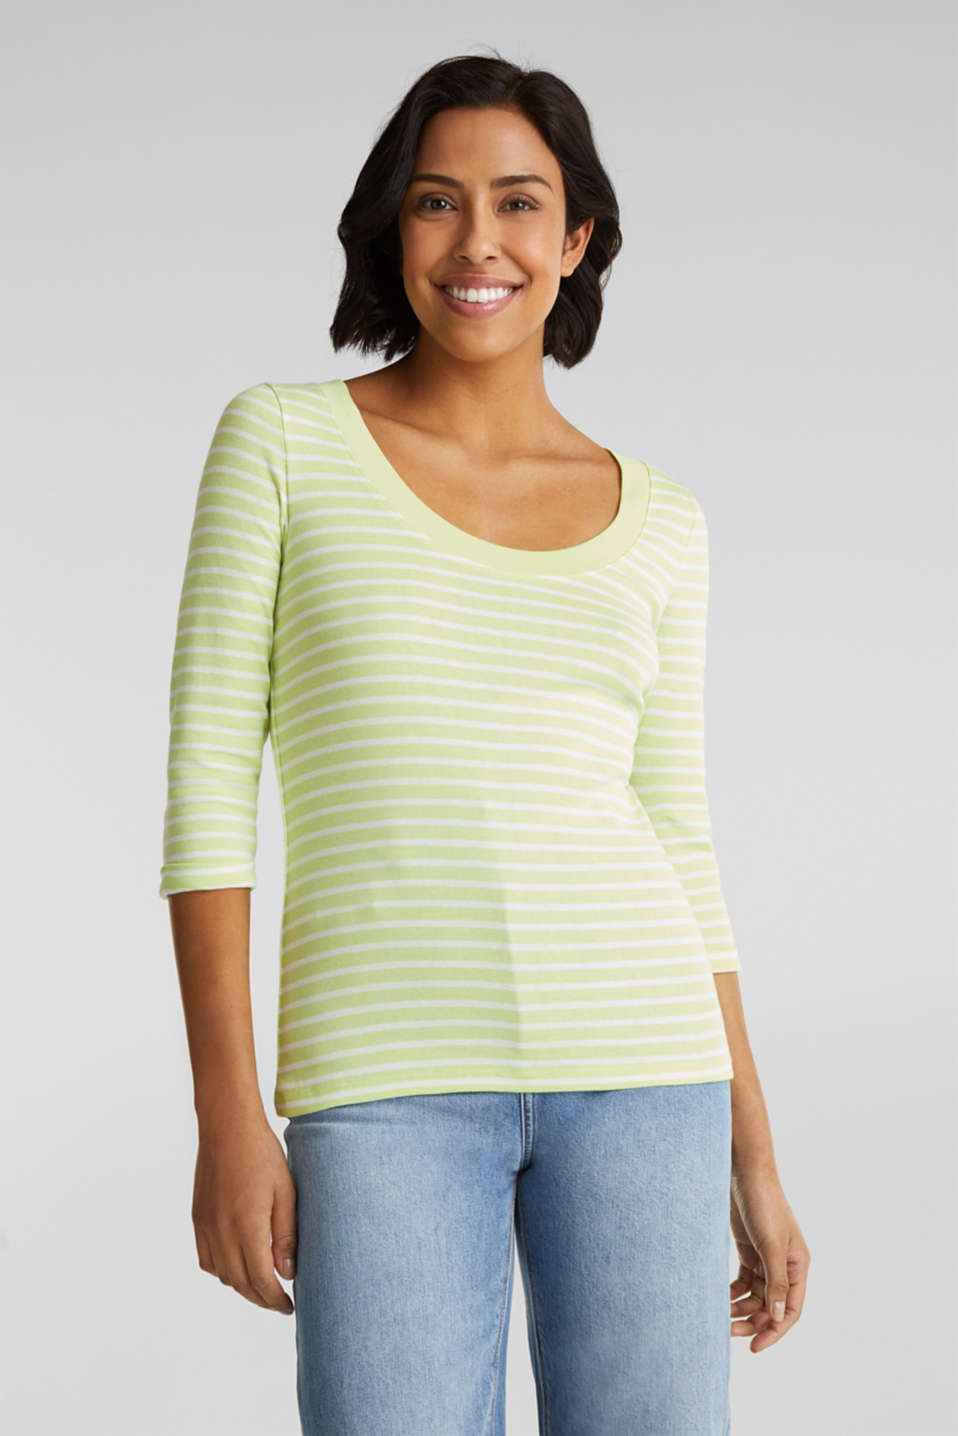 edc - Finely ribbed long sleeve top made of 100% cotton